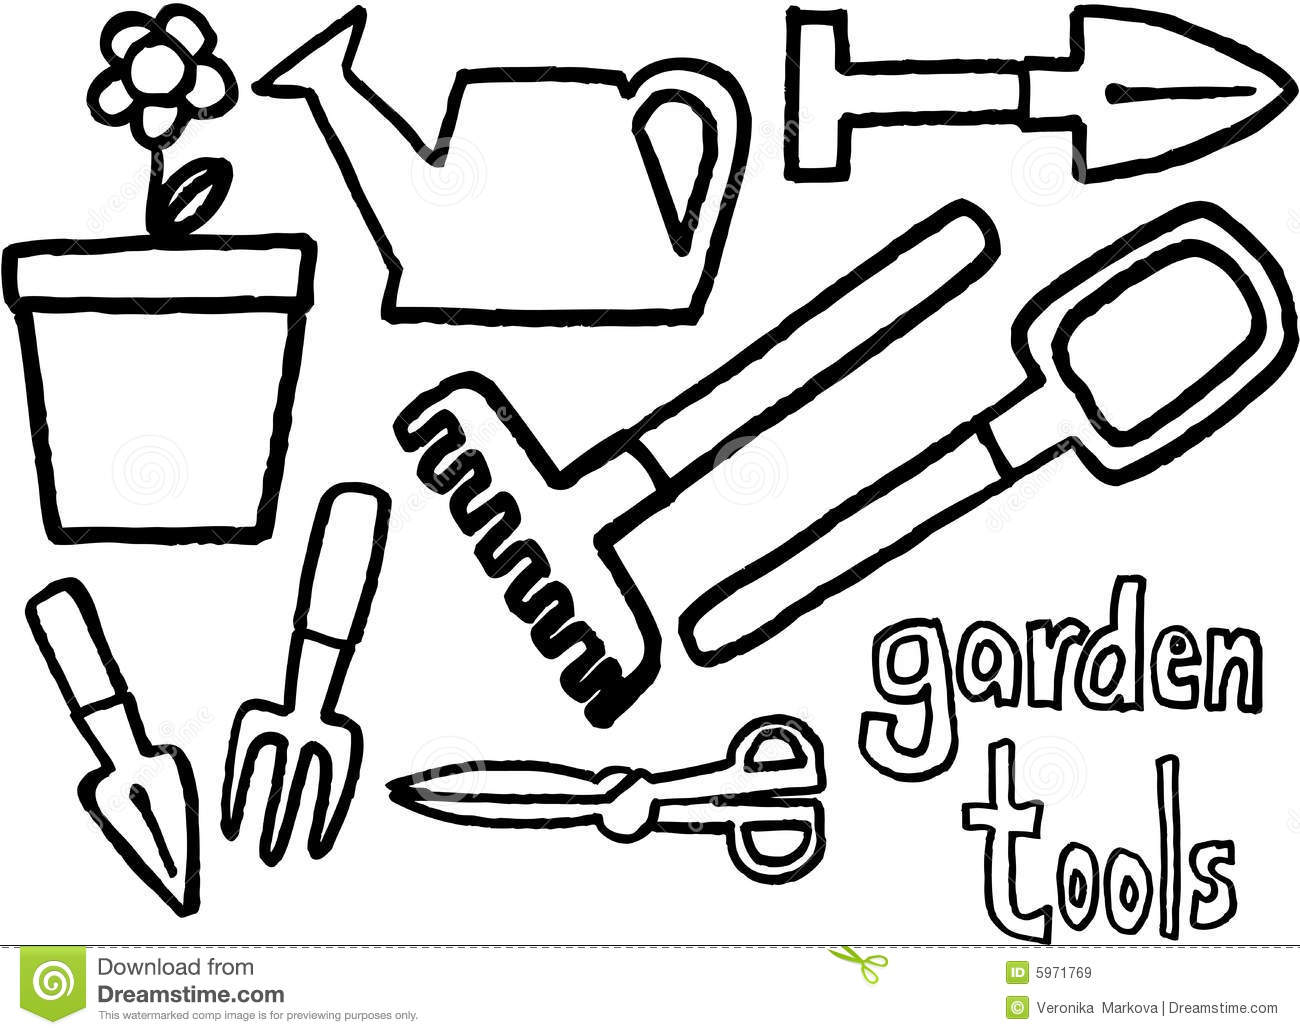 Utensils clipart colouring page. Coloring pages tools images